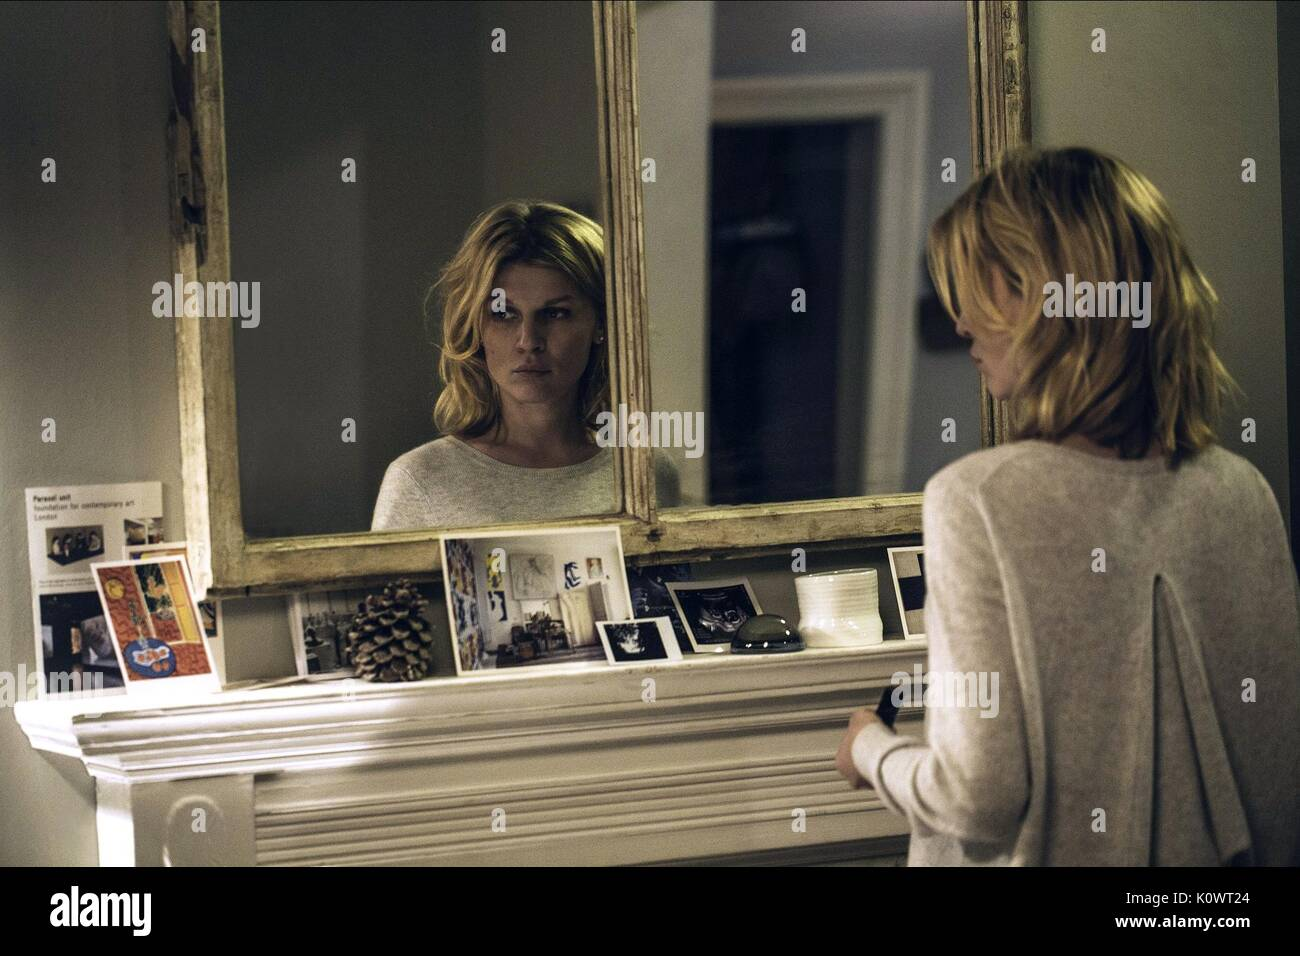 CLEMENCE POESY THE ONES BELOW (2015) - Stock Image